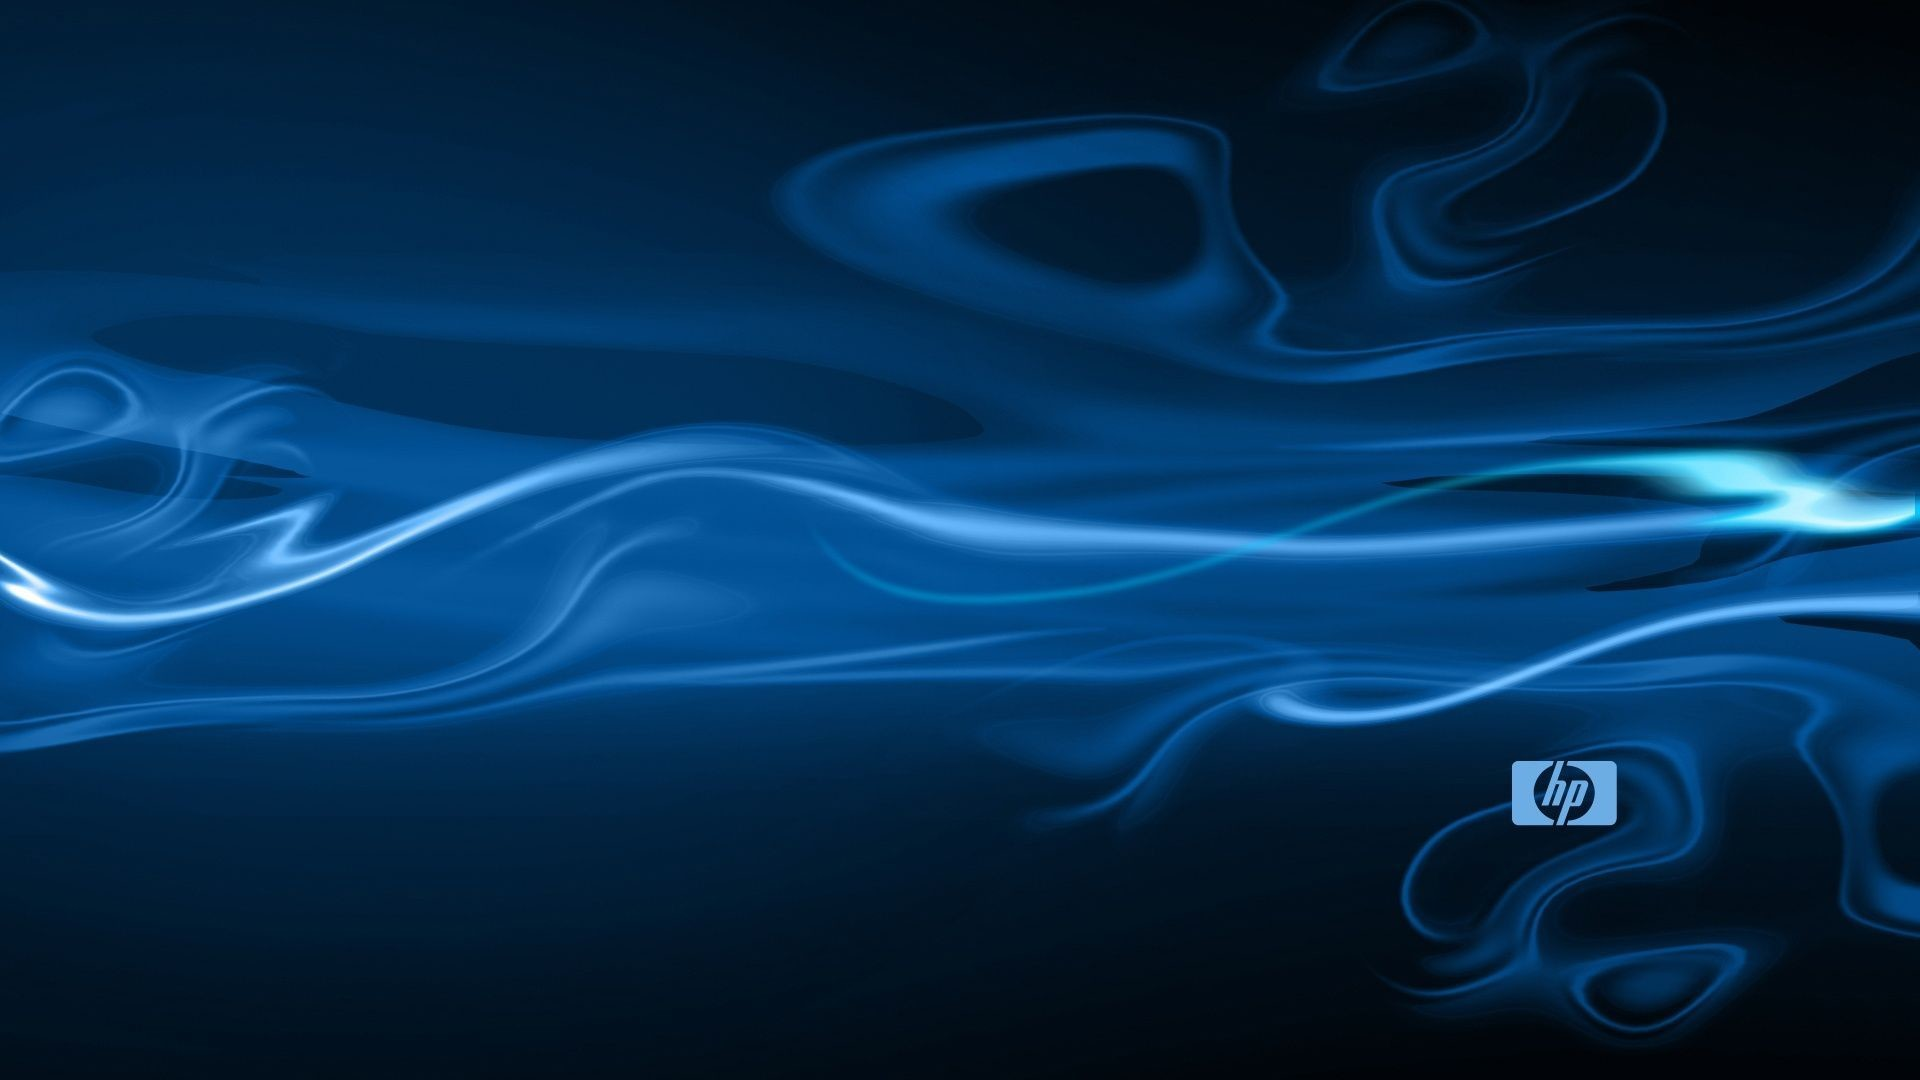 Res: 1920x1080, HP Pavilion Wallpapers - Wallpaper Cave